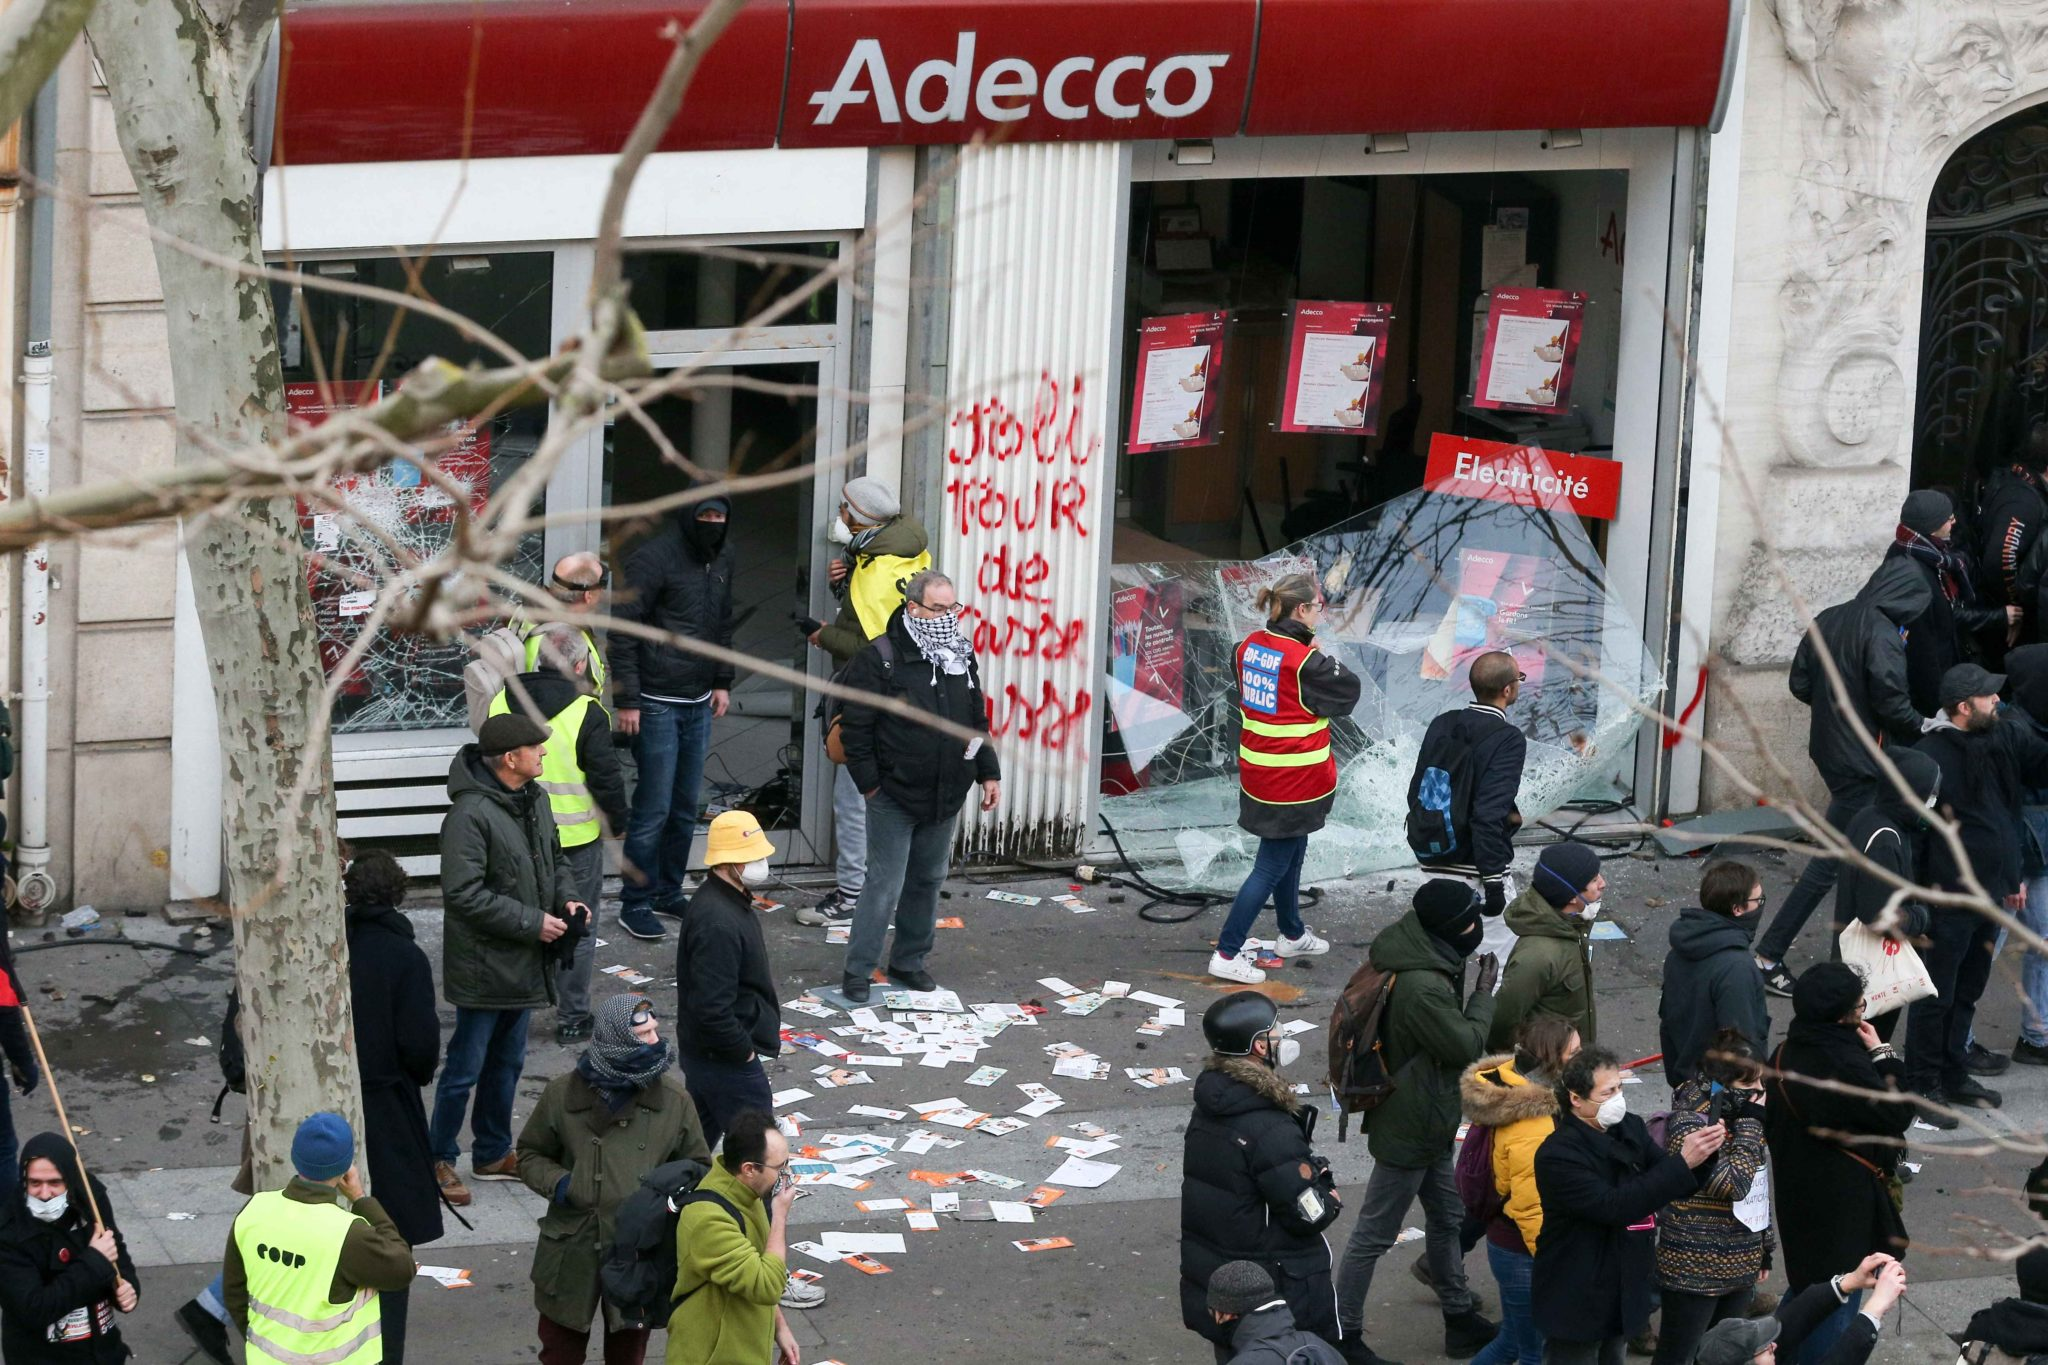 The windows of an Adecco interim agency are brocken during a demonstration in Paris, on January 11, 2020, as part of a nationwide multi-sector strike against the French government's pensions overhaul. The country has been hit by 37 days of crippling train